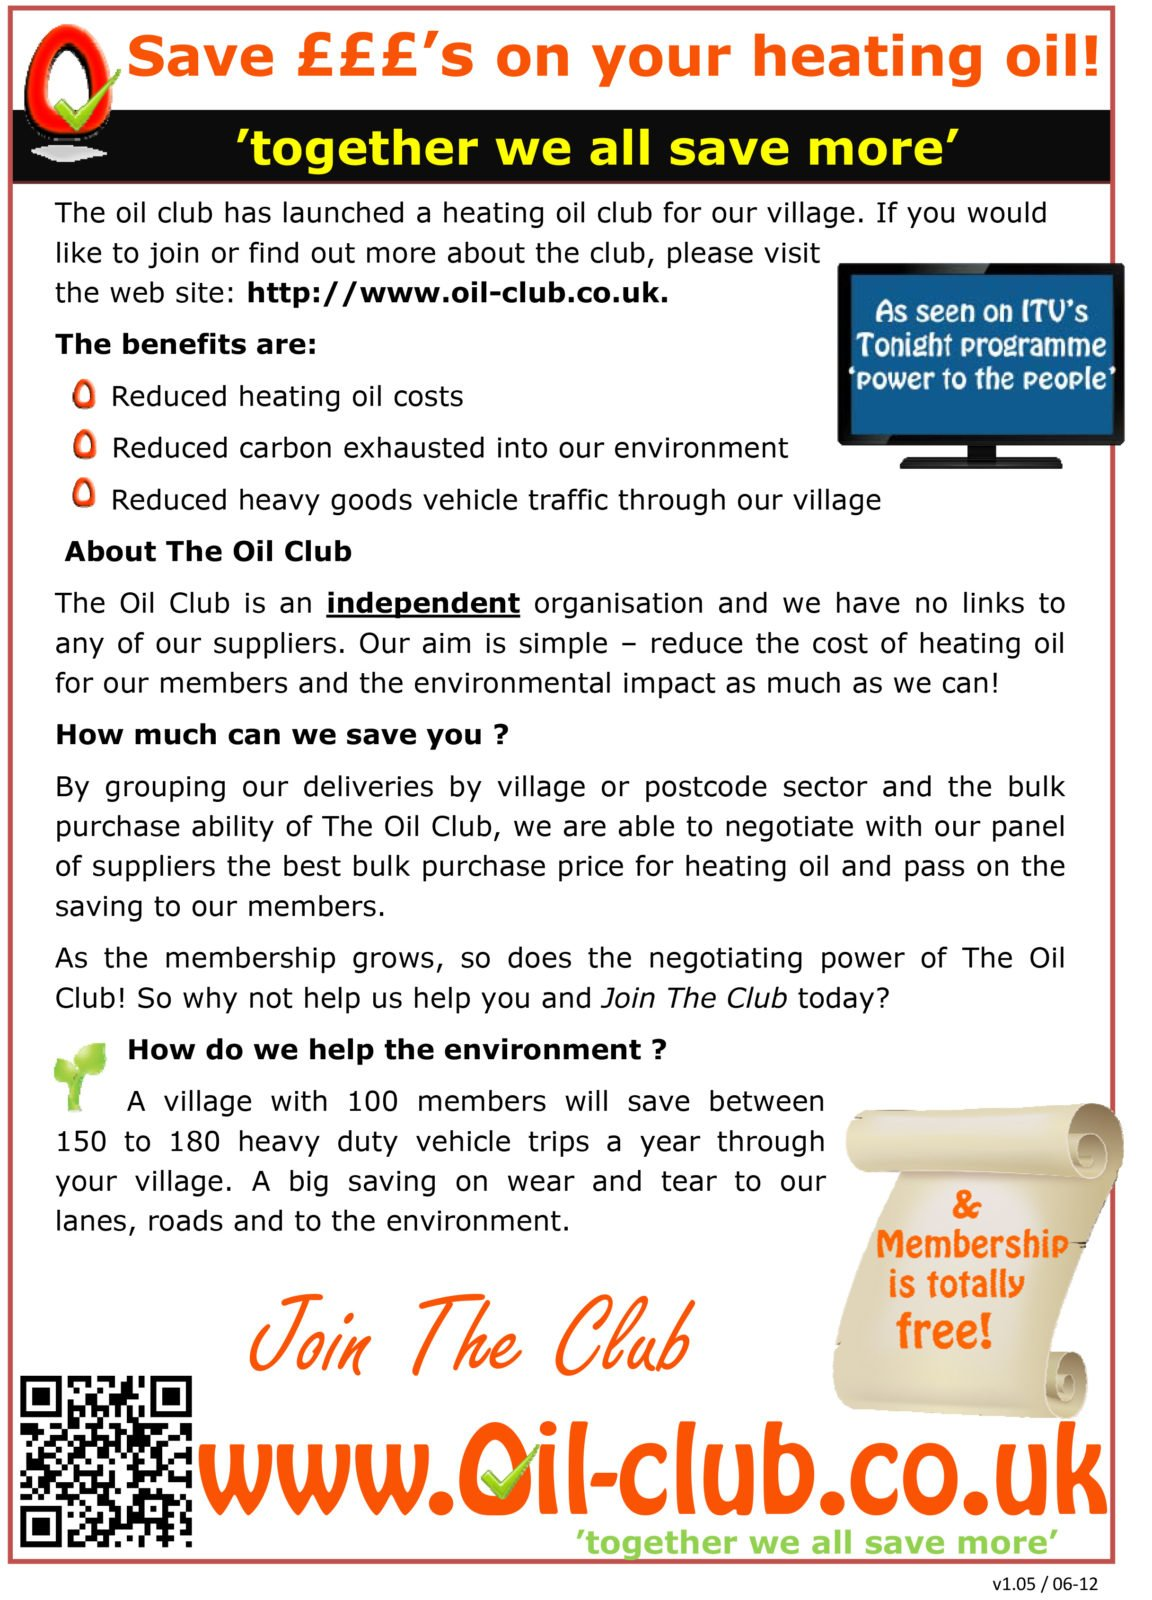 Save on heating oil - The Oil Club